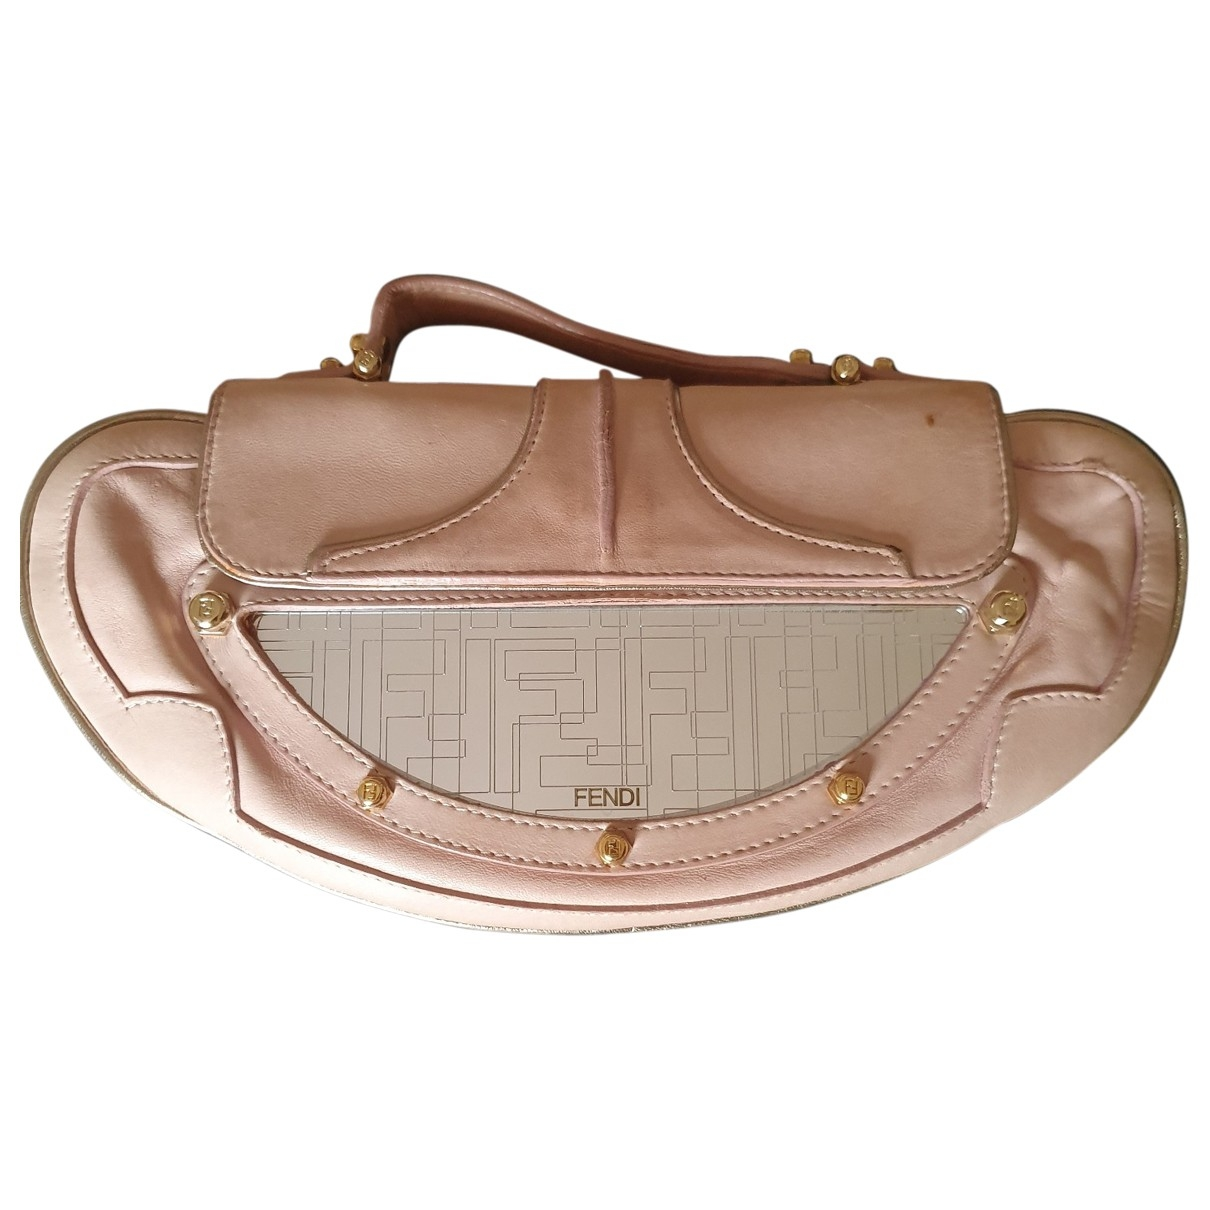 Fendi \N Pink Leather Clutch bag for Women \N